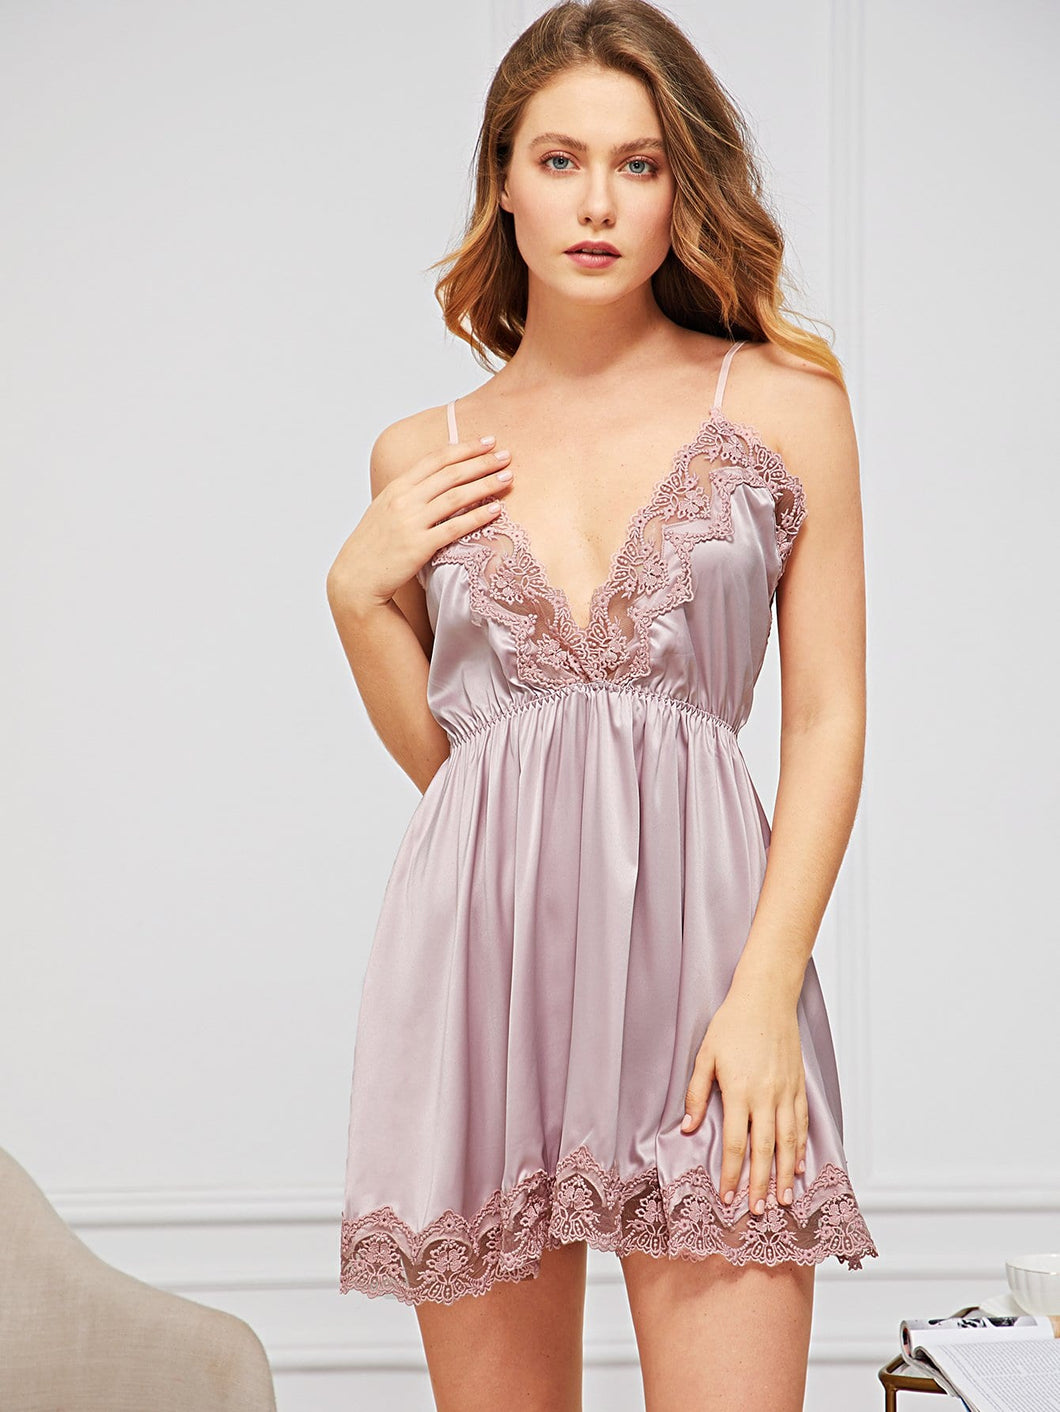 LINGERIE Contrast Lace Satin Cami Dress - EK CHIC